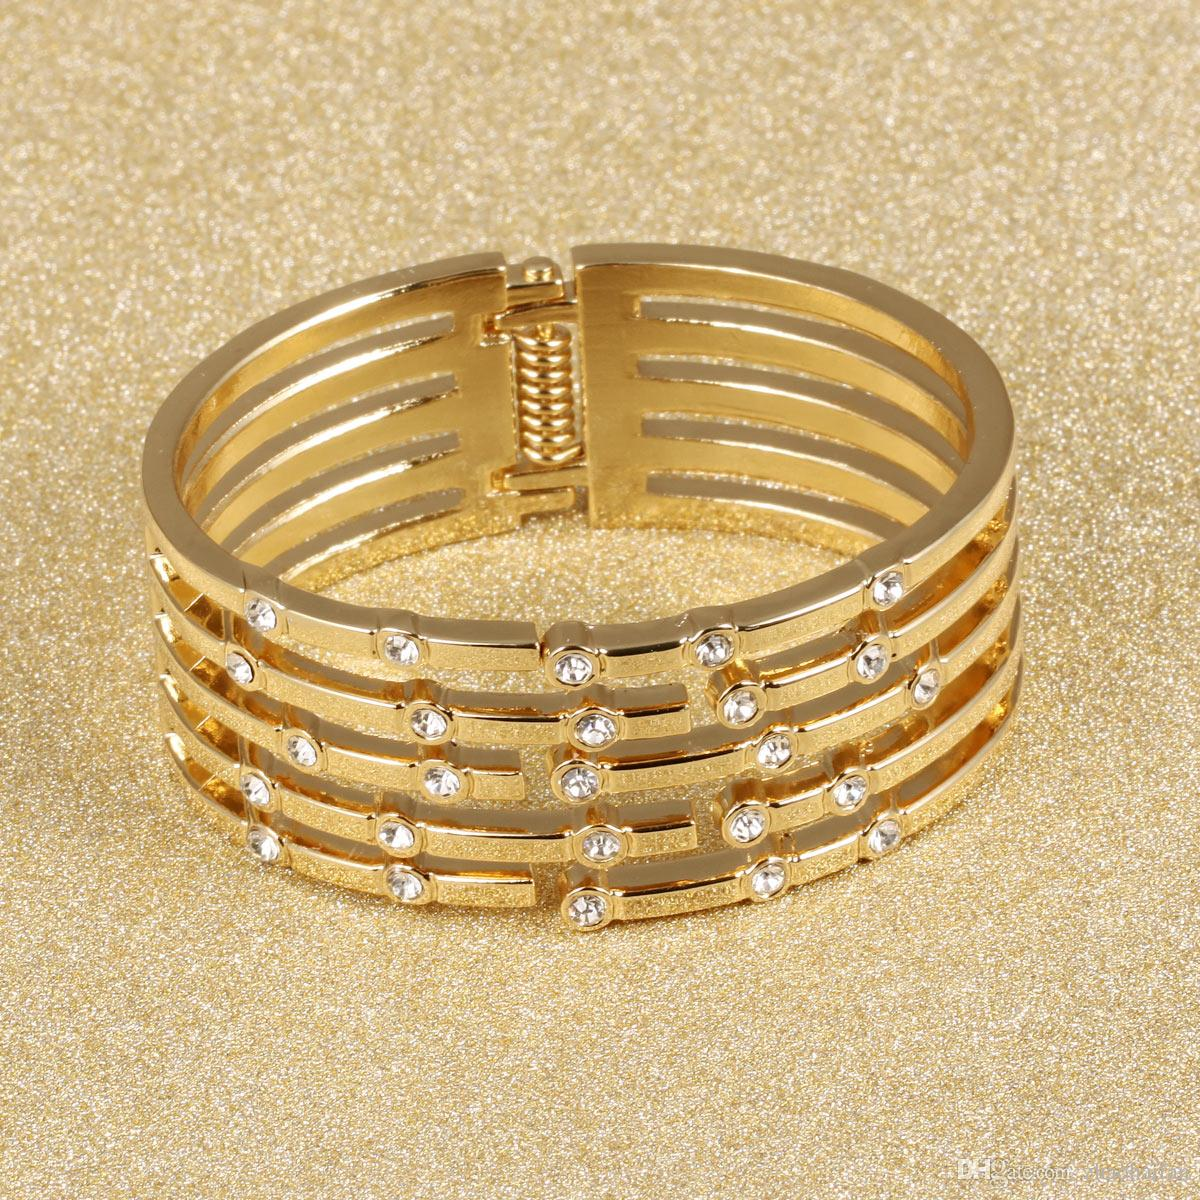 jewellery women bracelet itm hollow silver wide bangle ladies punk open cuff woman gold